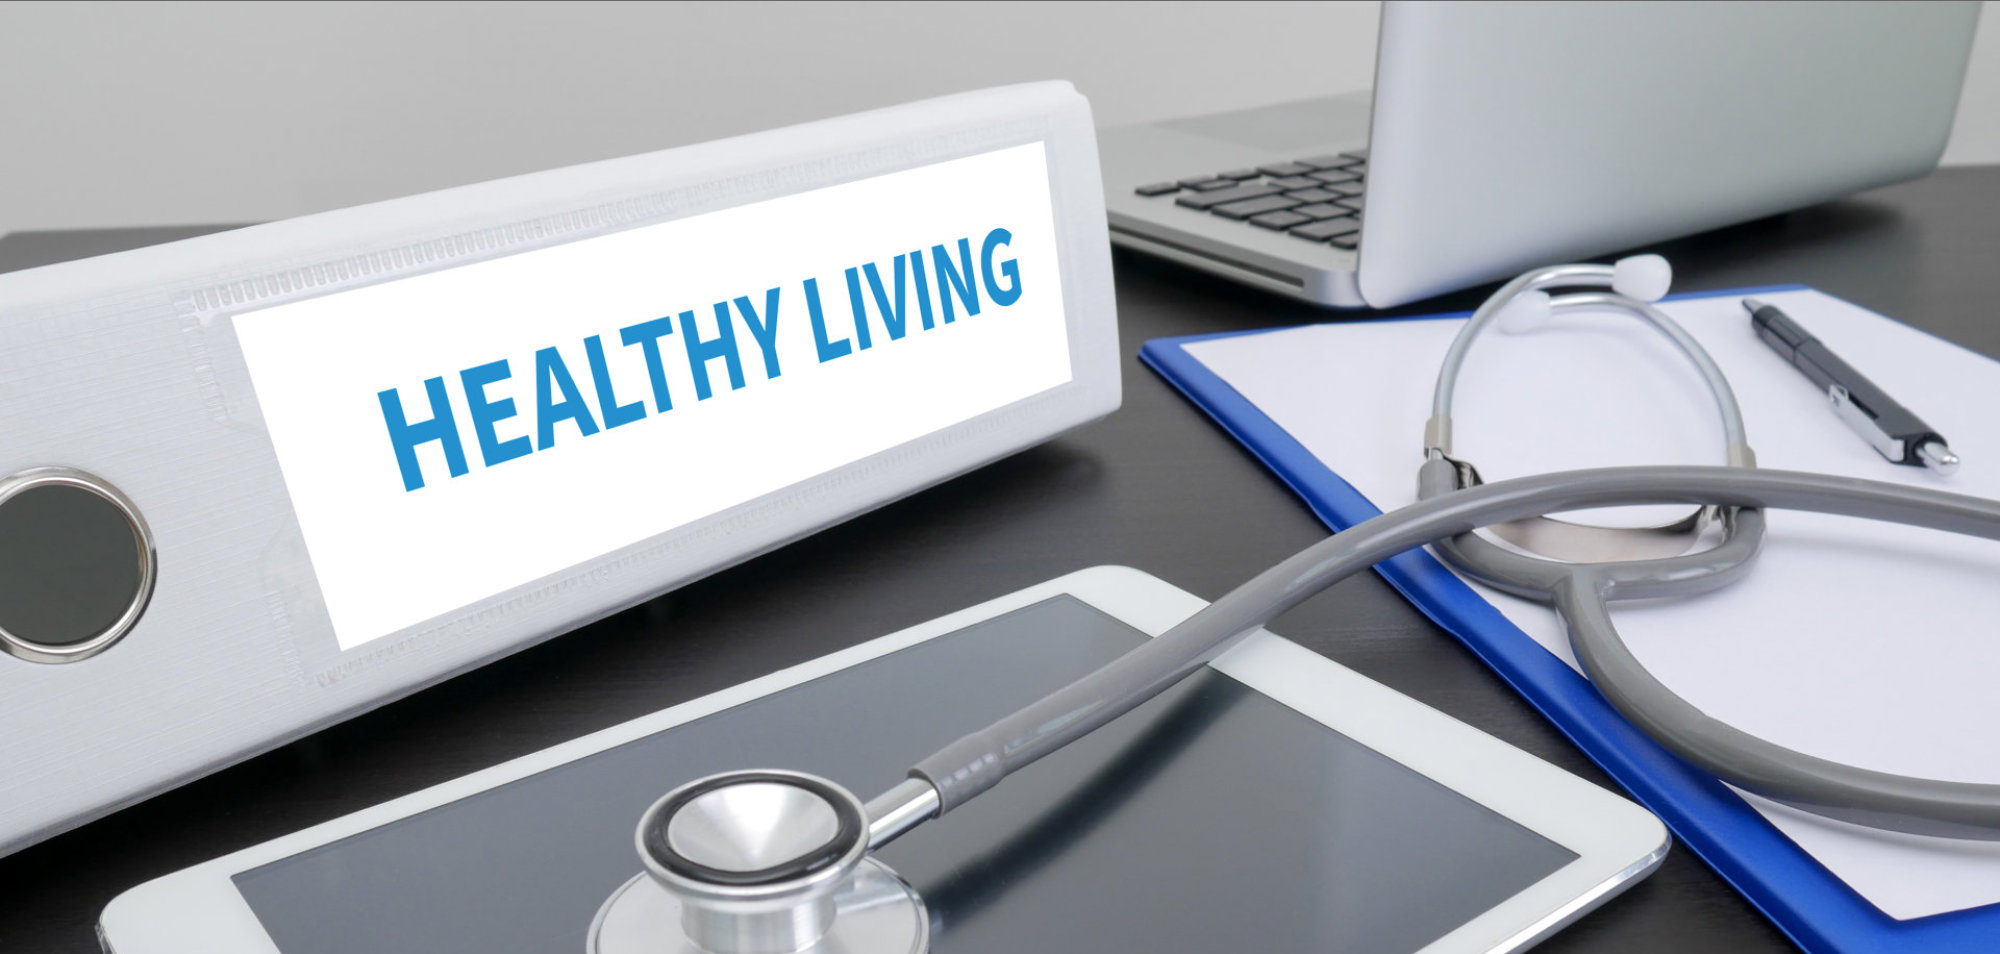 HEALTHY LIVING folder on Desktop on table. ipad